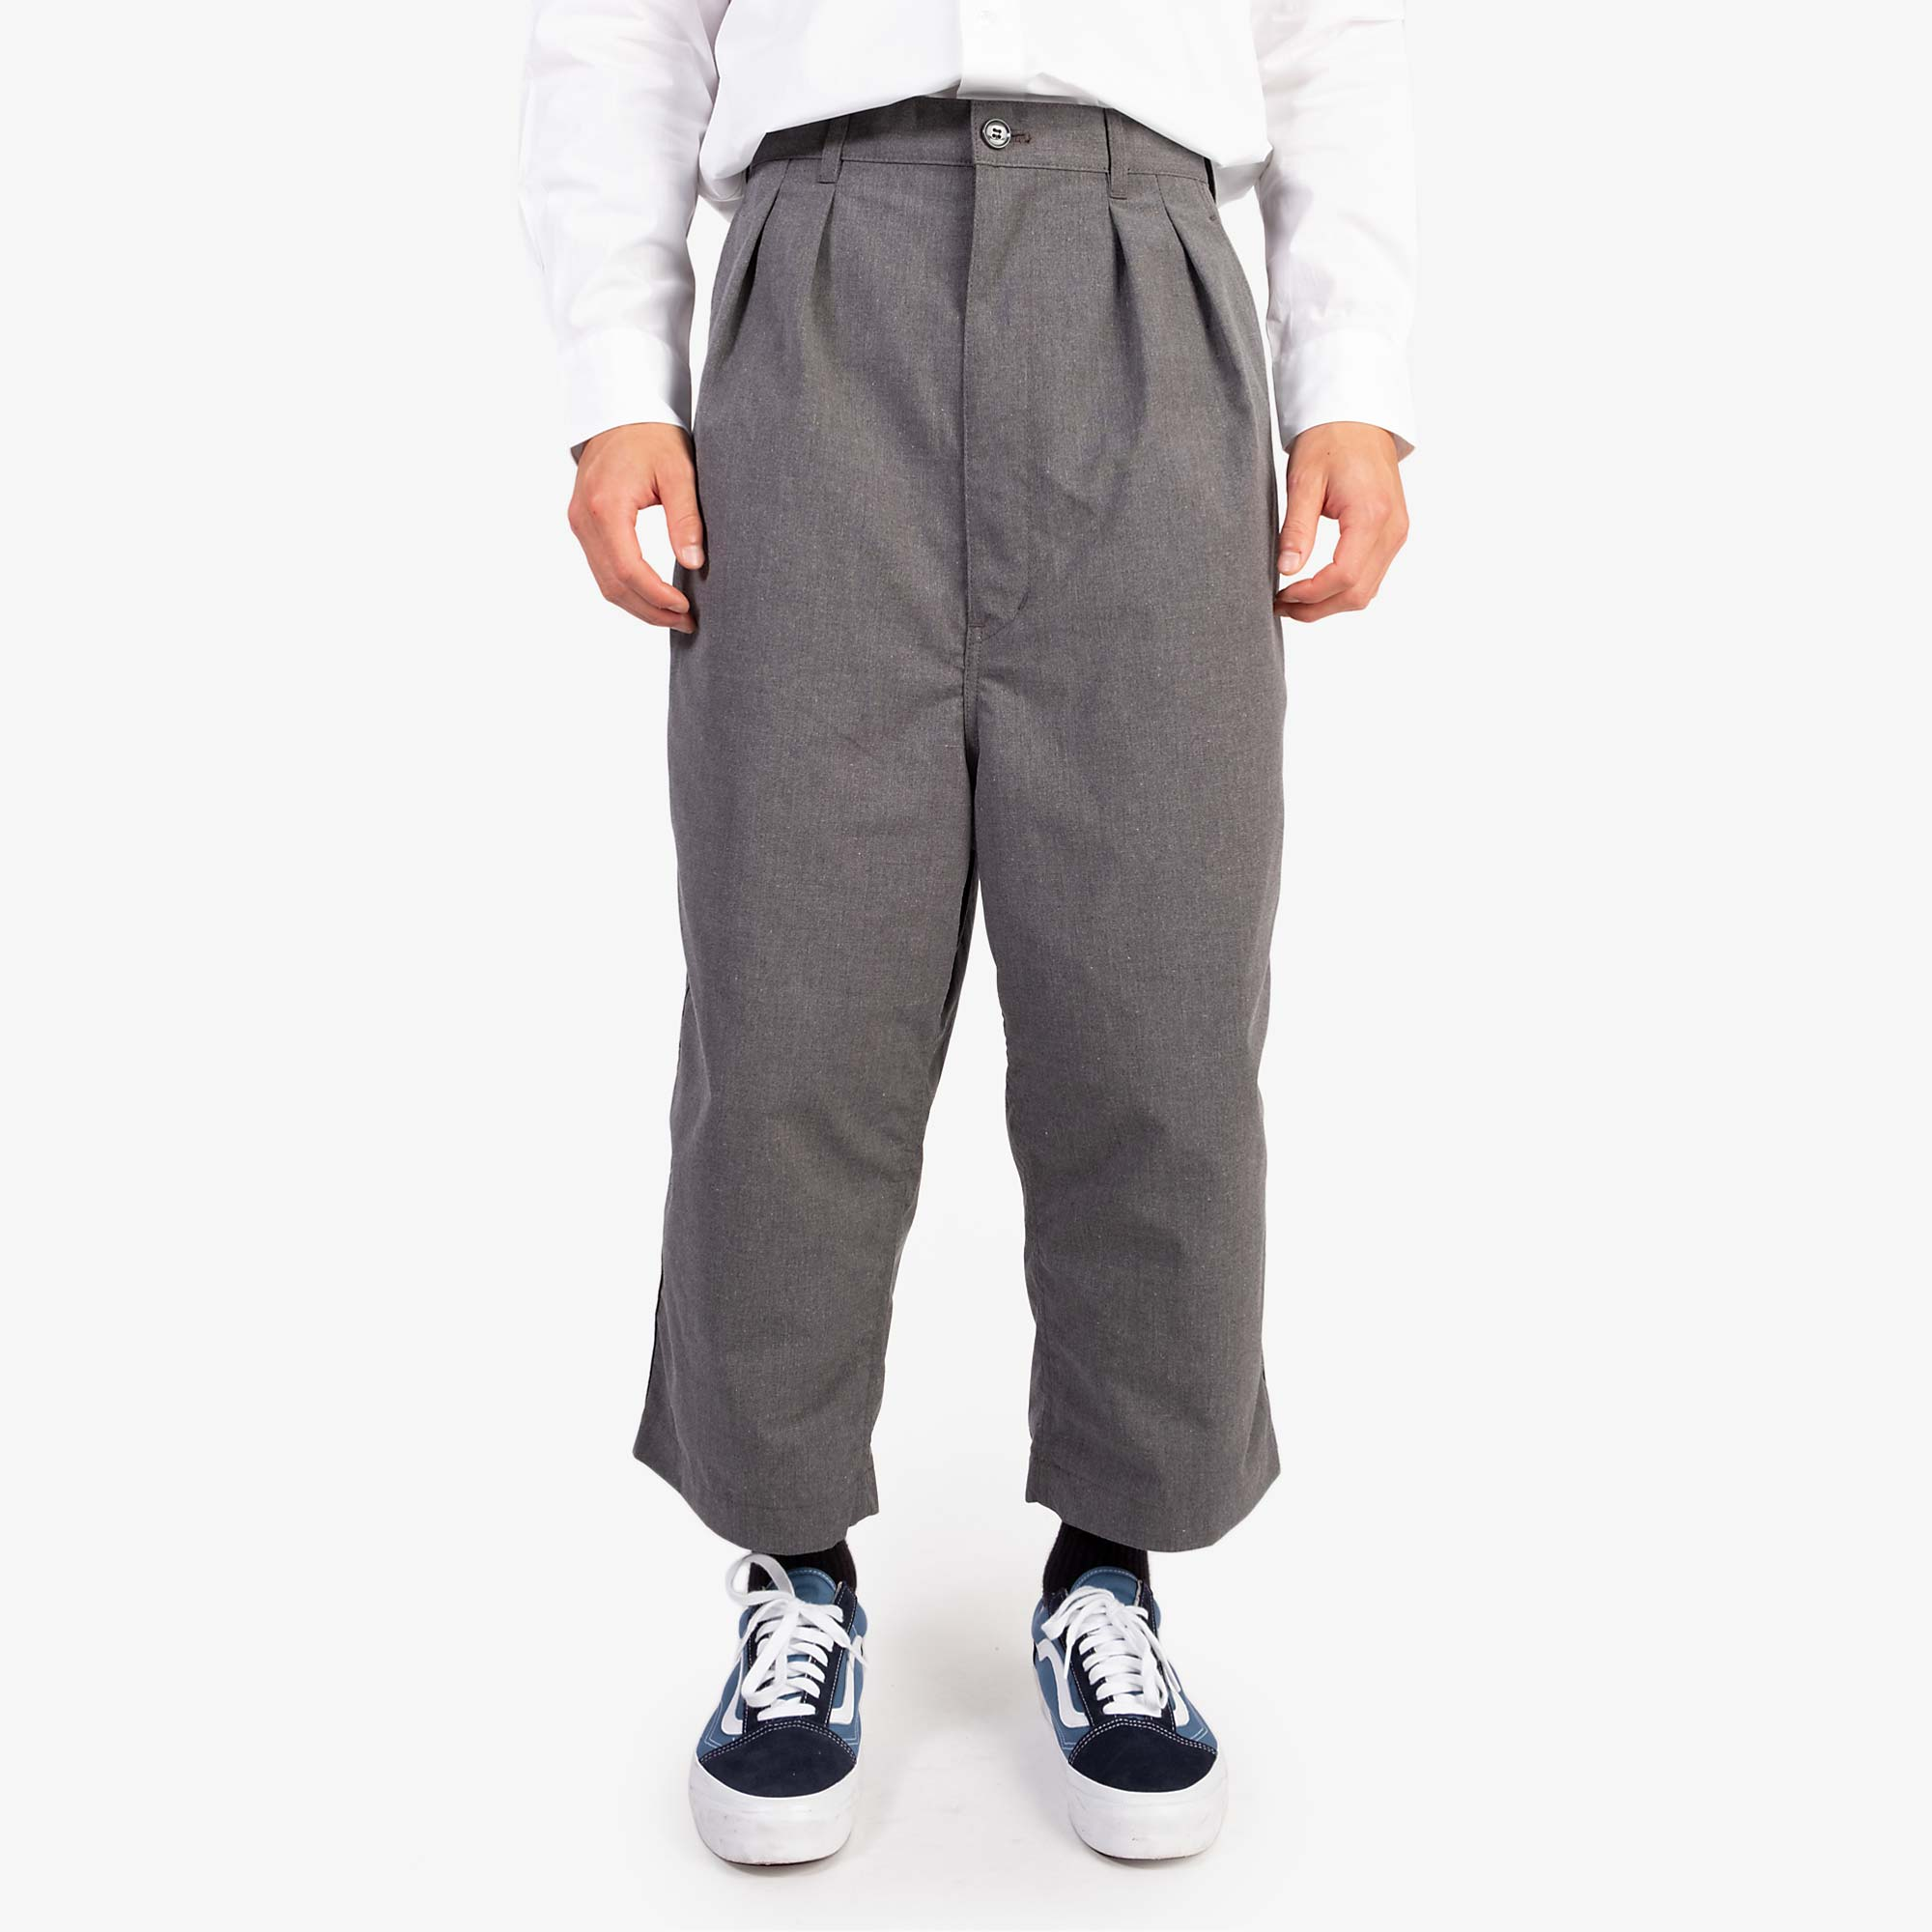 Comme des Garçons - Homme Two Tuck Wide Pleat Trousers - Grey 2